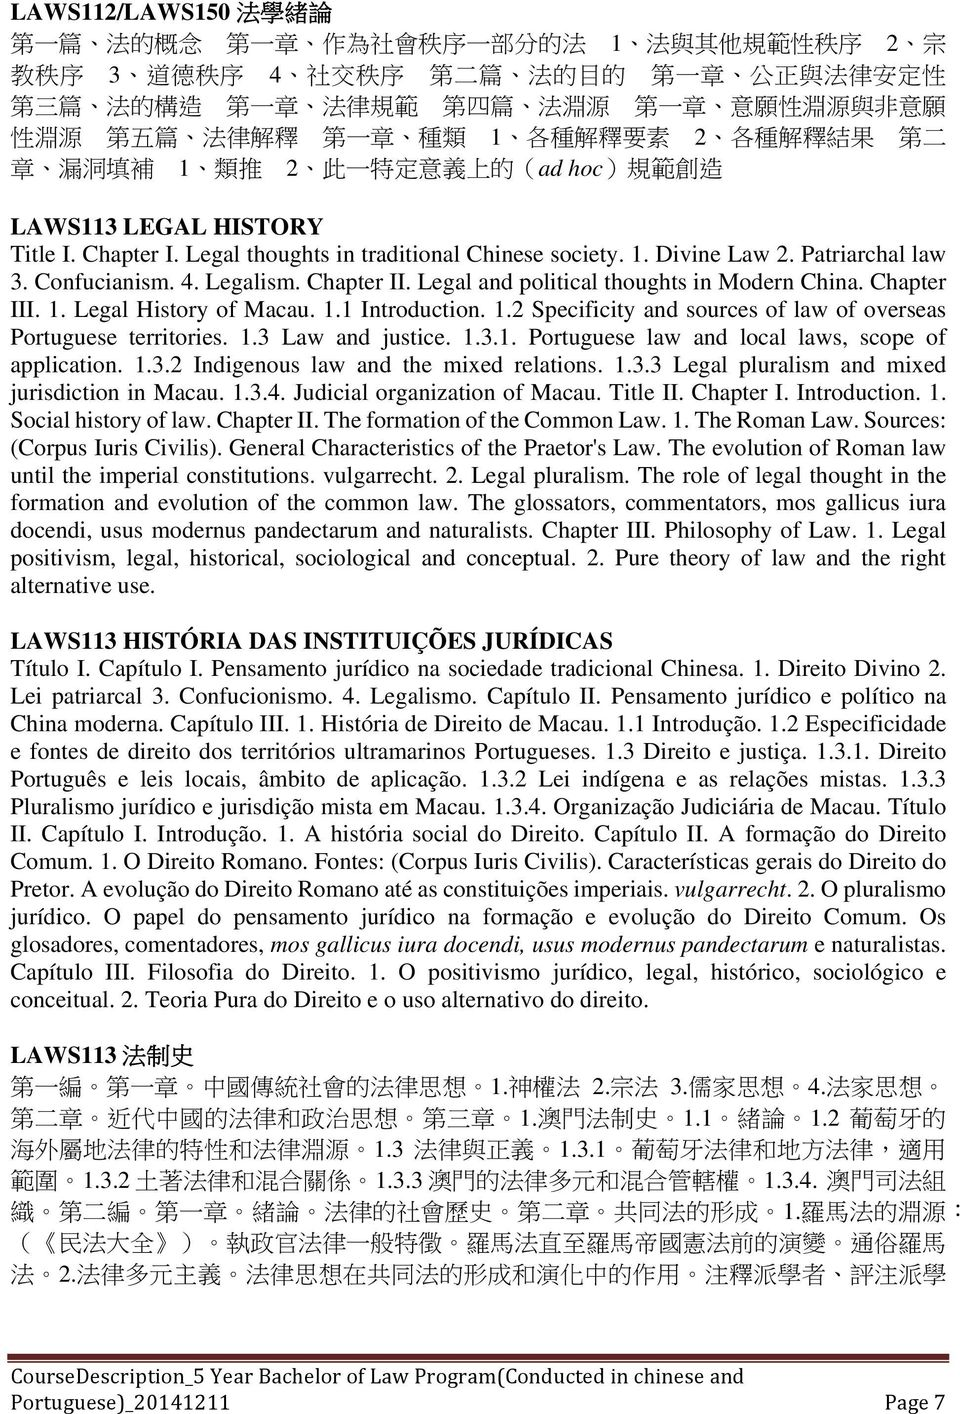 Legal thoughts in traditional Chinese society. 1. Divine Law 2. Patriarchal law 3. Confucianism. 4. Legalism. Chapter II. Legal and political thoughts in Modern China. Chapter III. 1. Legal History of Macau.